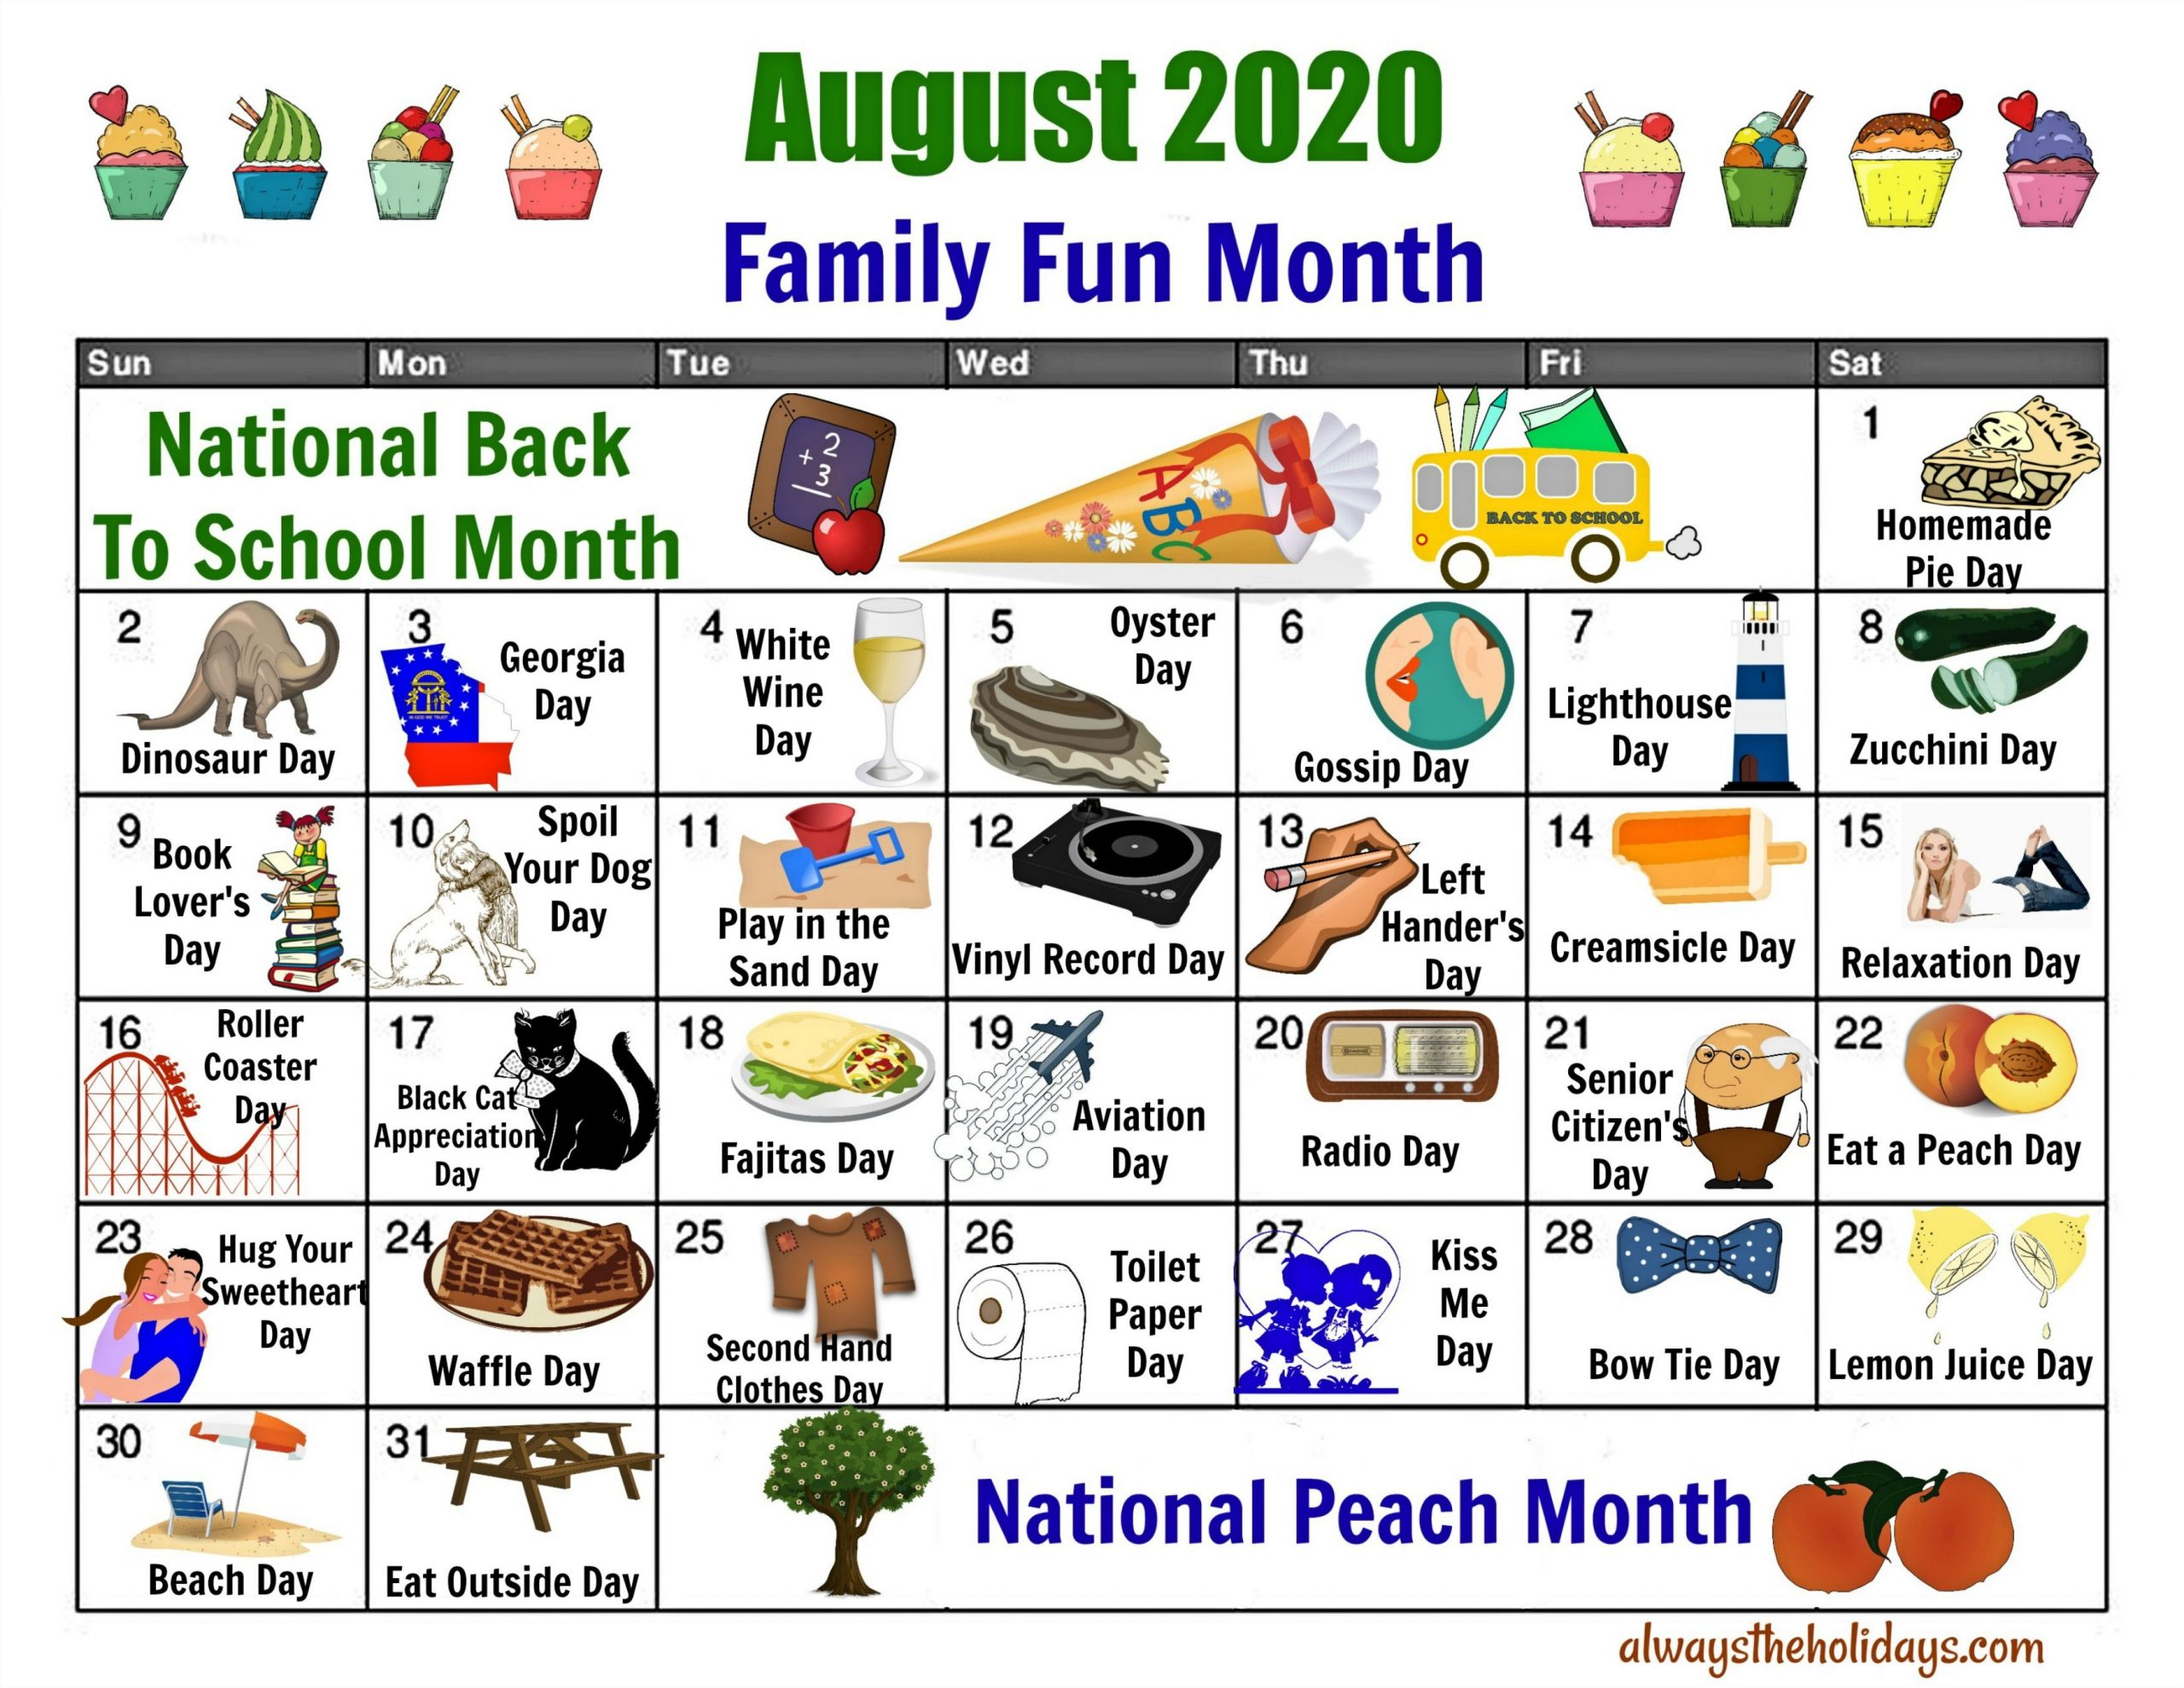 August National Day Calendar - Free Printable Of National Days-Fun National Day Calendar Of 2021 Printable